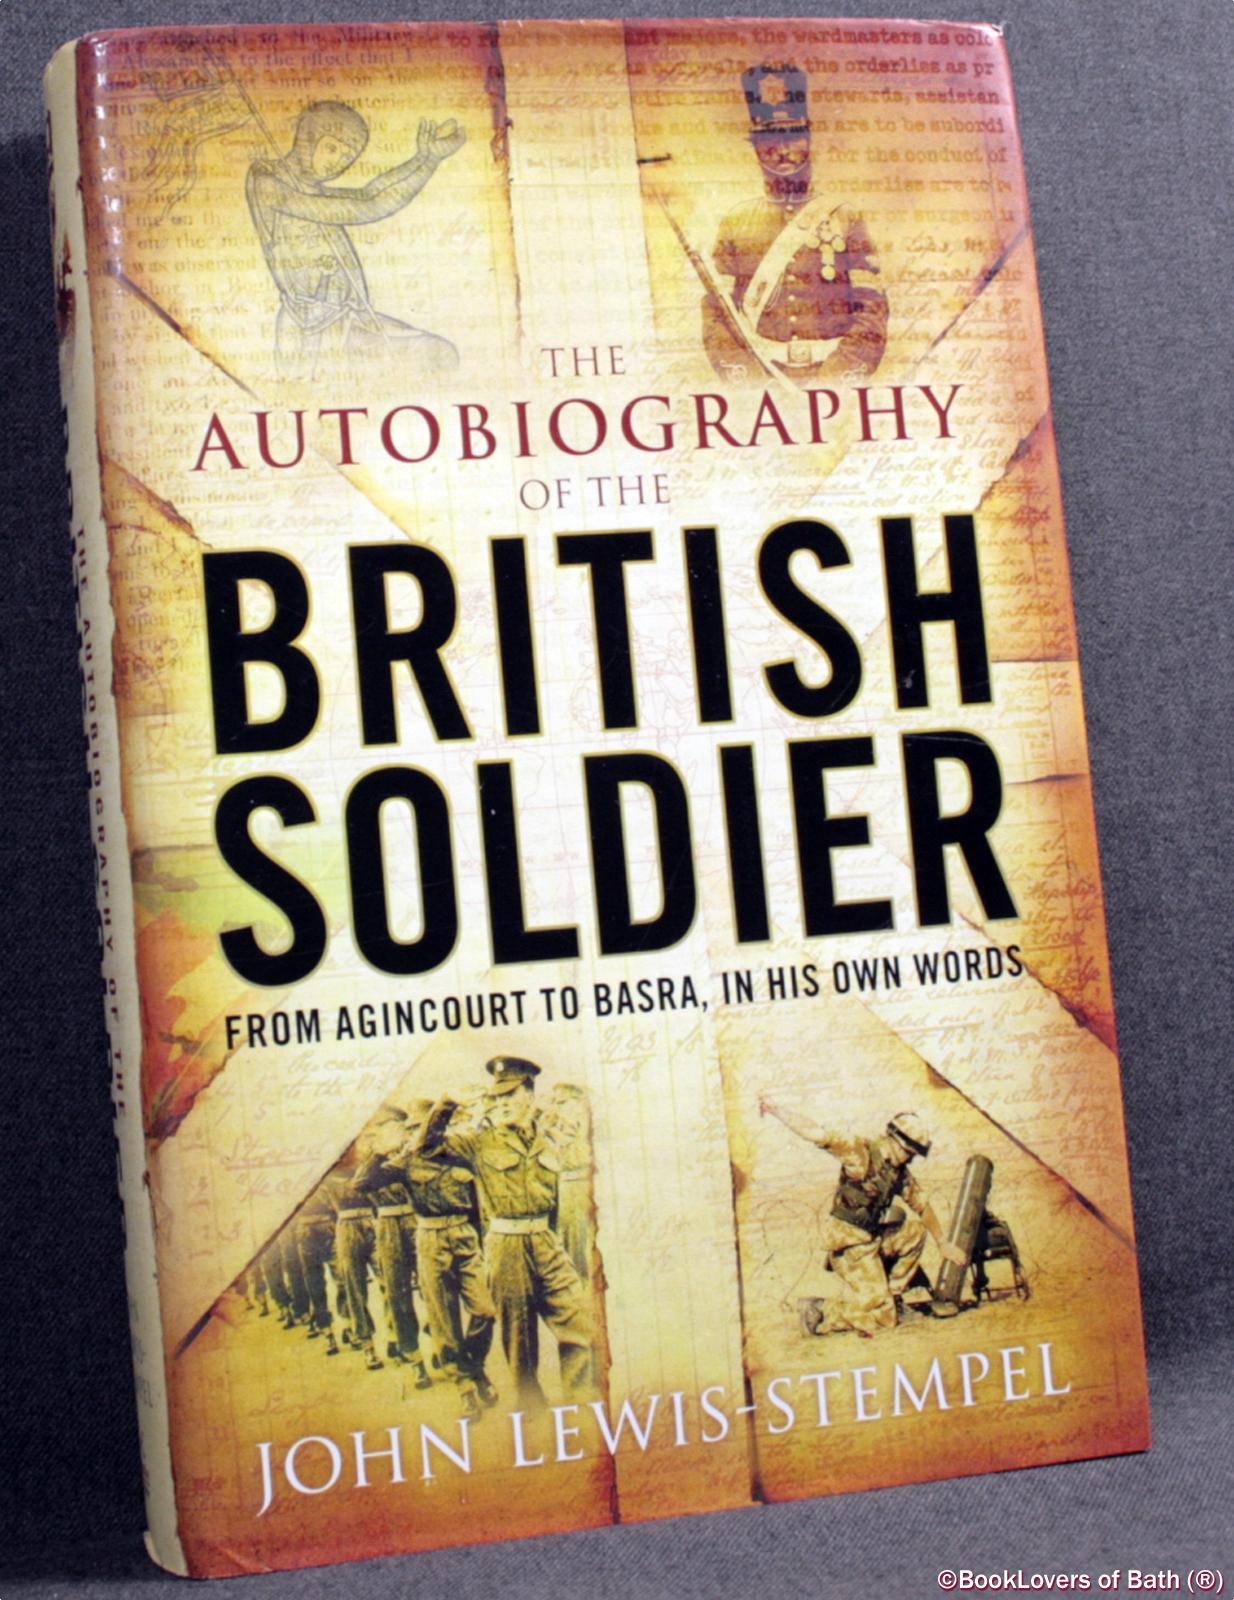 The Autobiography of the British Soldier: From Agincourt to Basra, in His Own Words - John Lewis-Stempel